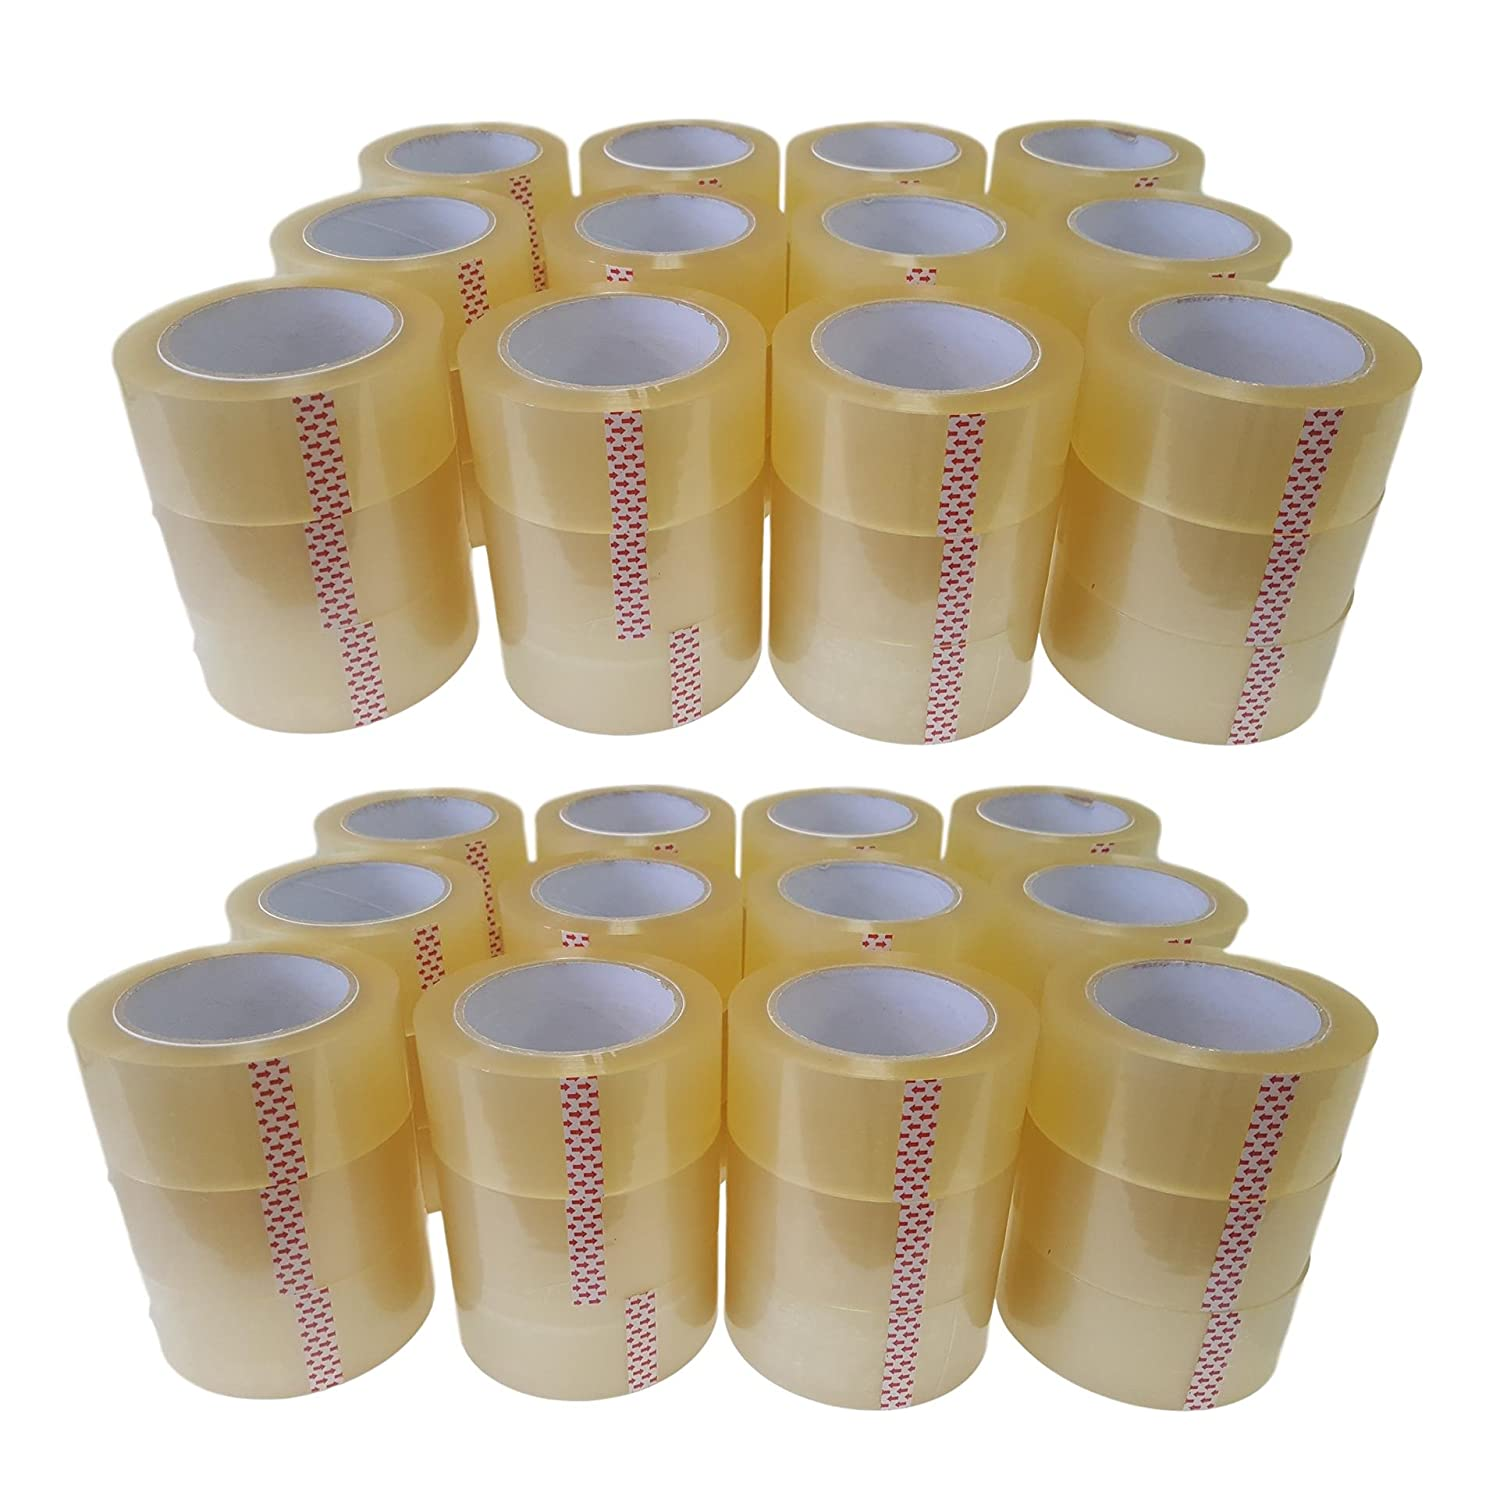 Oknuu 72-Rolls Clear Packaging Packing Tape 2x110 Yards 48mm x 100m - BOPP Water Based Acrylic Glue - Super Strong Carton Sealing Tape - Extra Heavy Duty - 2.56 MIL Thickness